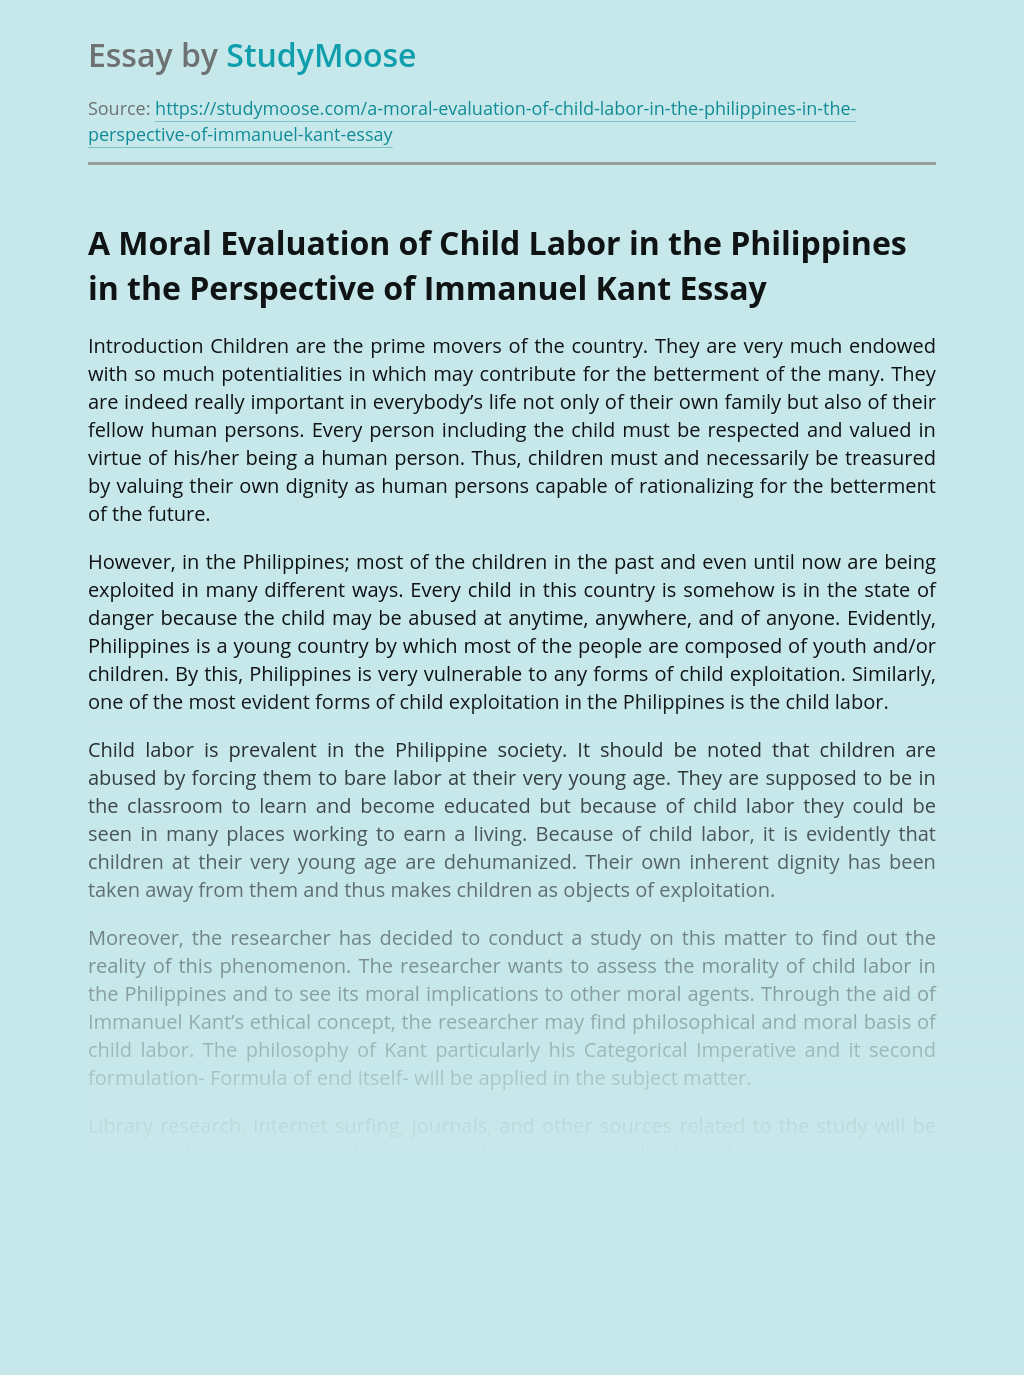 A Moral Evaluation of Child Labor in the Philippines in the Perspective of Immanuel Kant